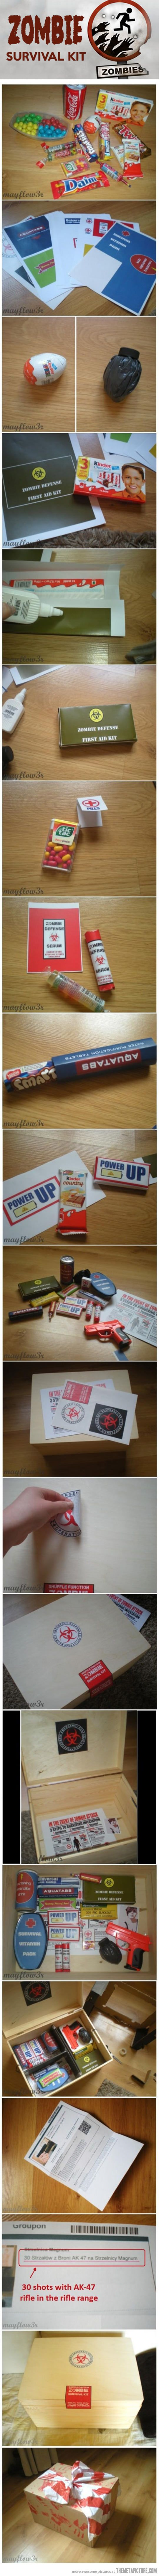 "Amazing zombie survival kit gift box this would even be a good idea for a ""first aid"" kit"